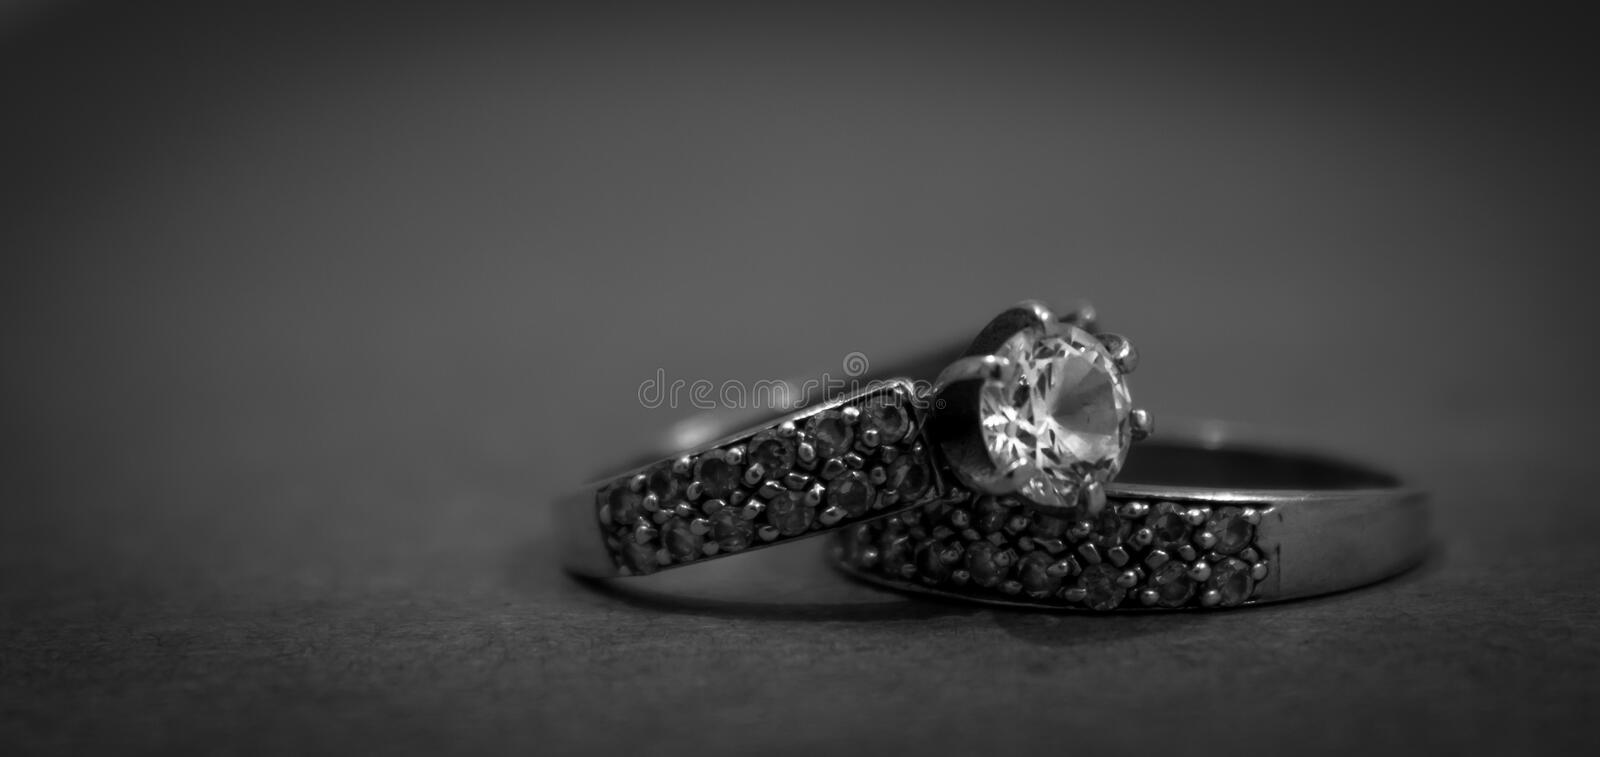 Grayscale Photo Of 2 Silver With Diamond Rings Free Public Domain Cc0 Image